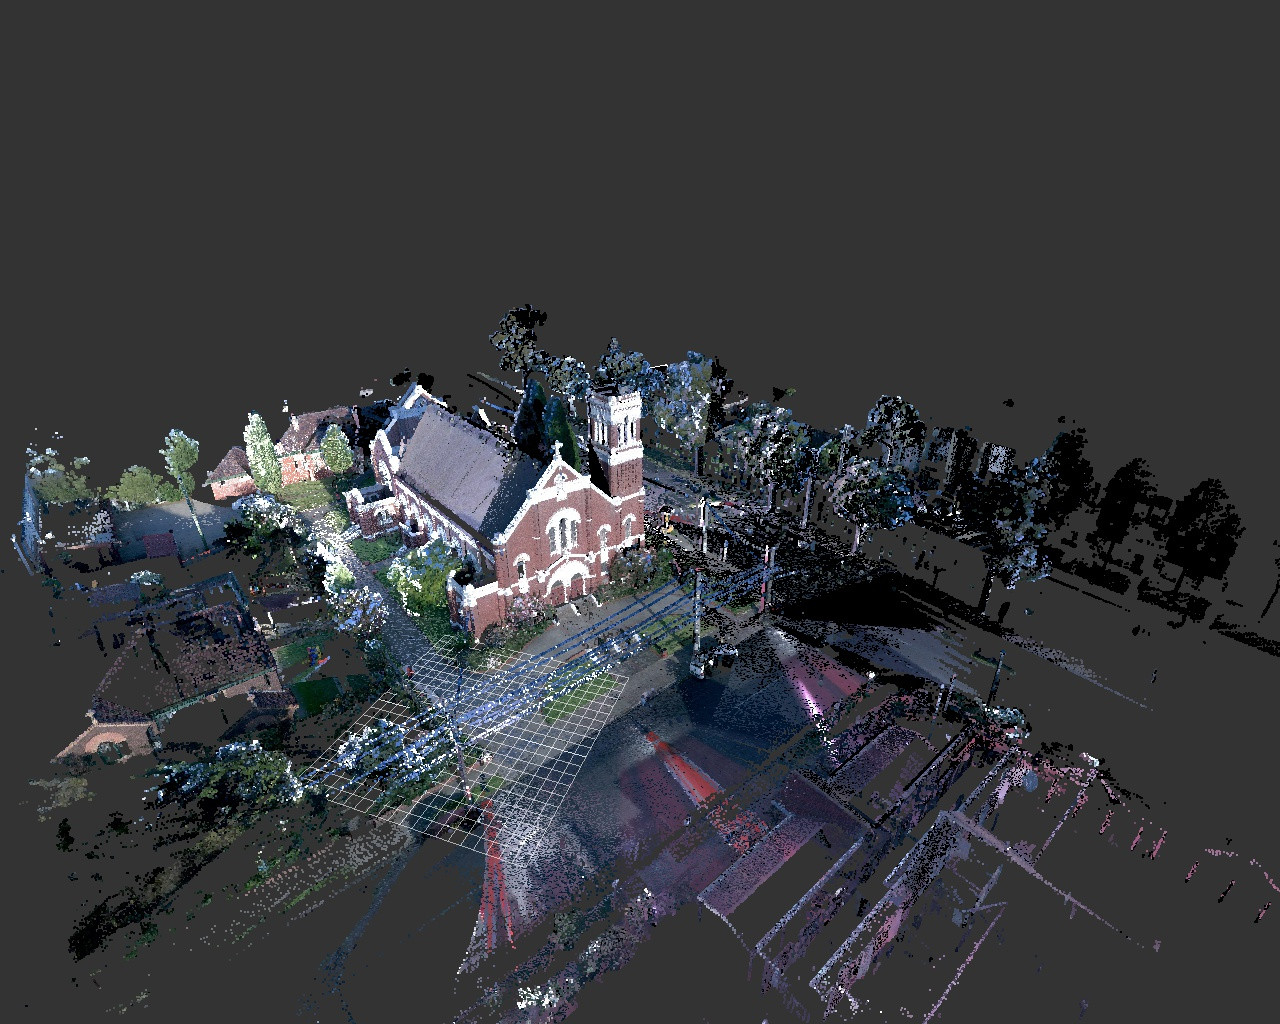 3D Laser Scanning to Point Cloud for Heritage